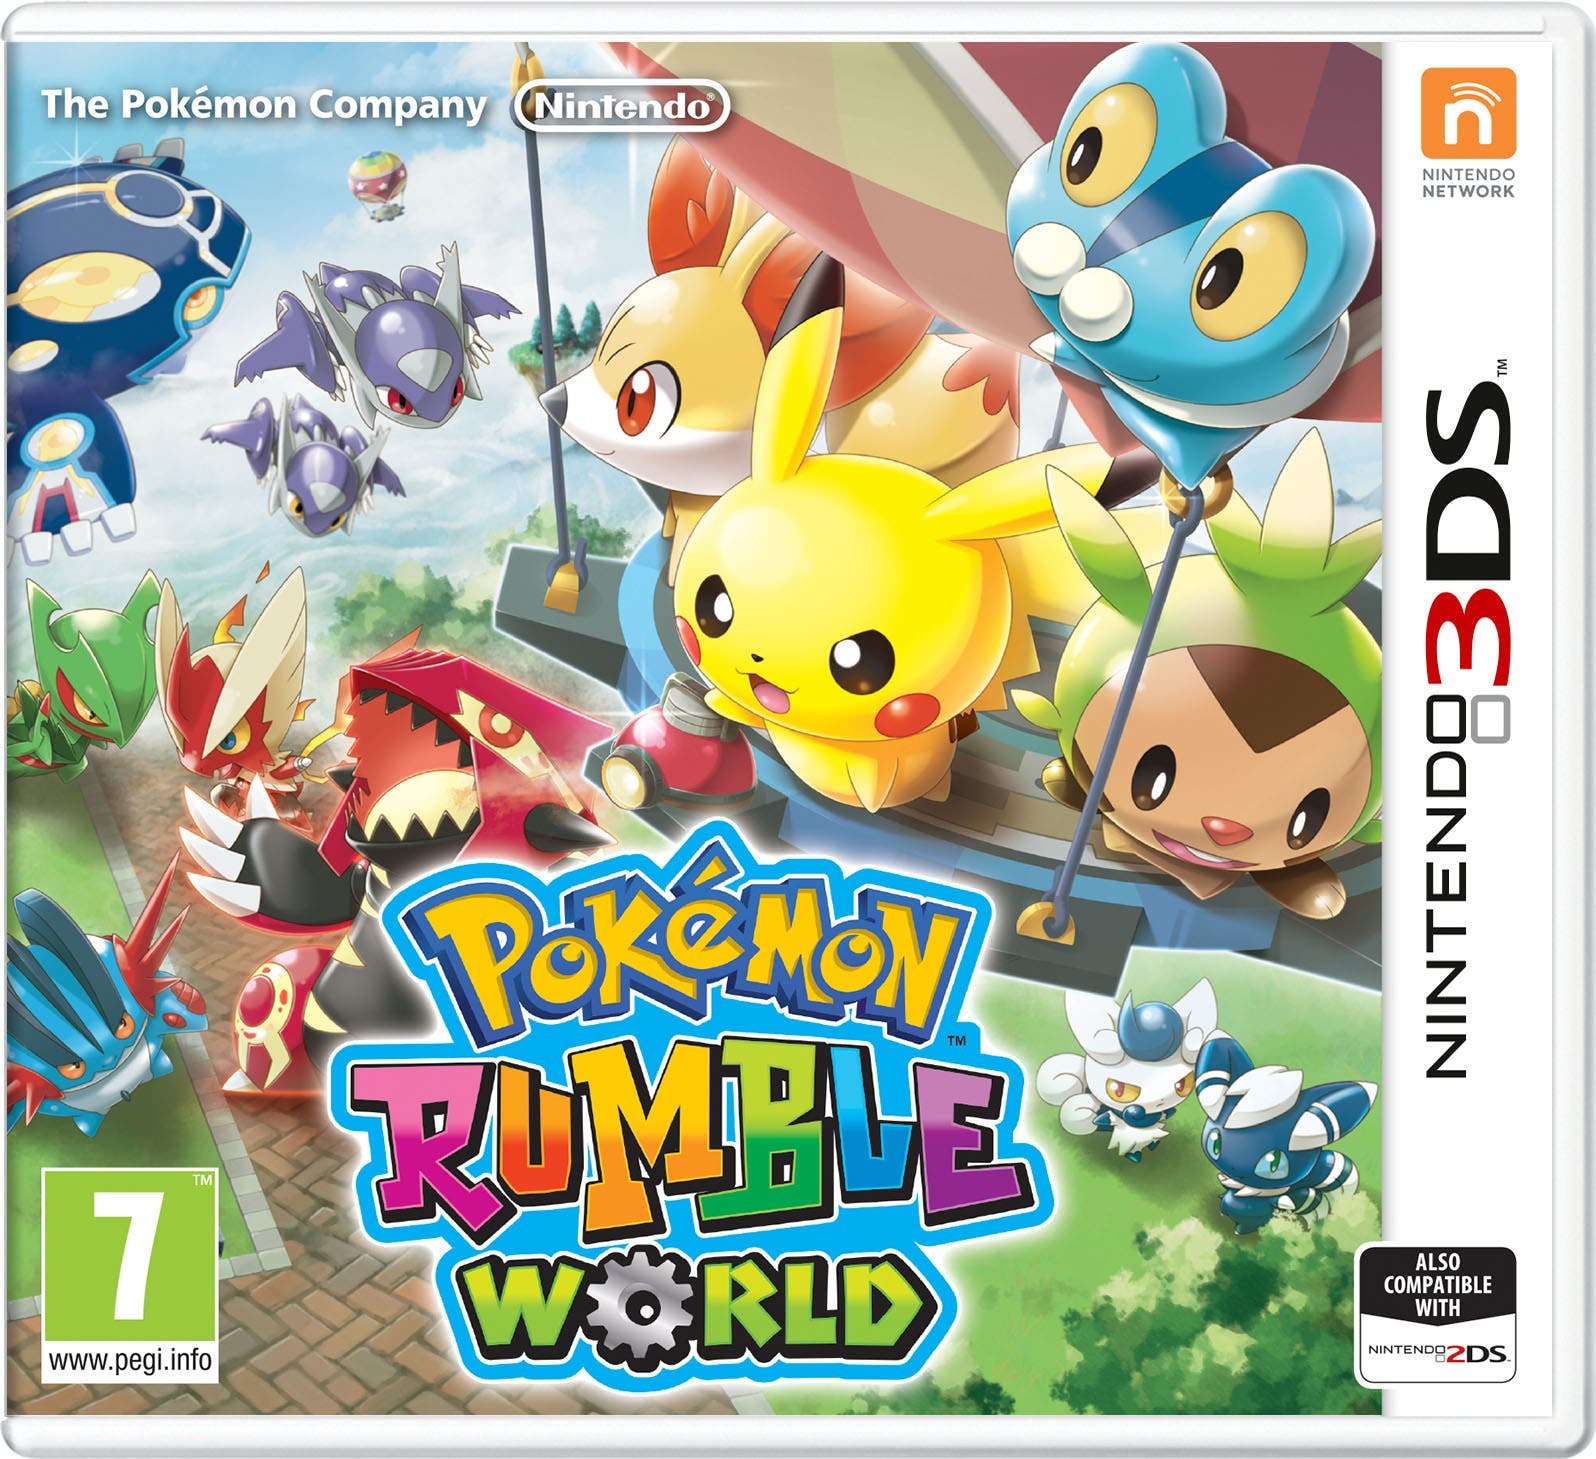 Pokemon-Rumble-World-EU-Retail-Ann